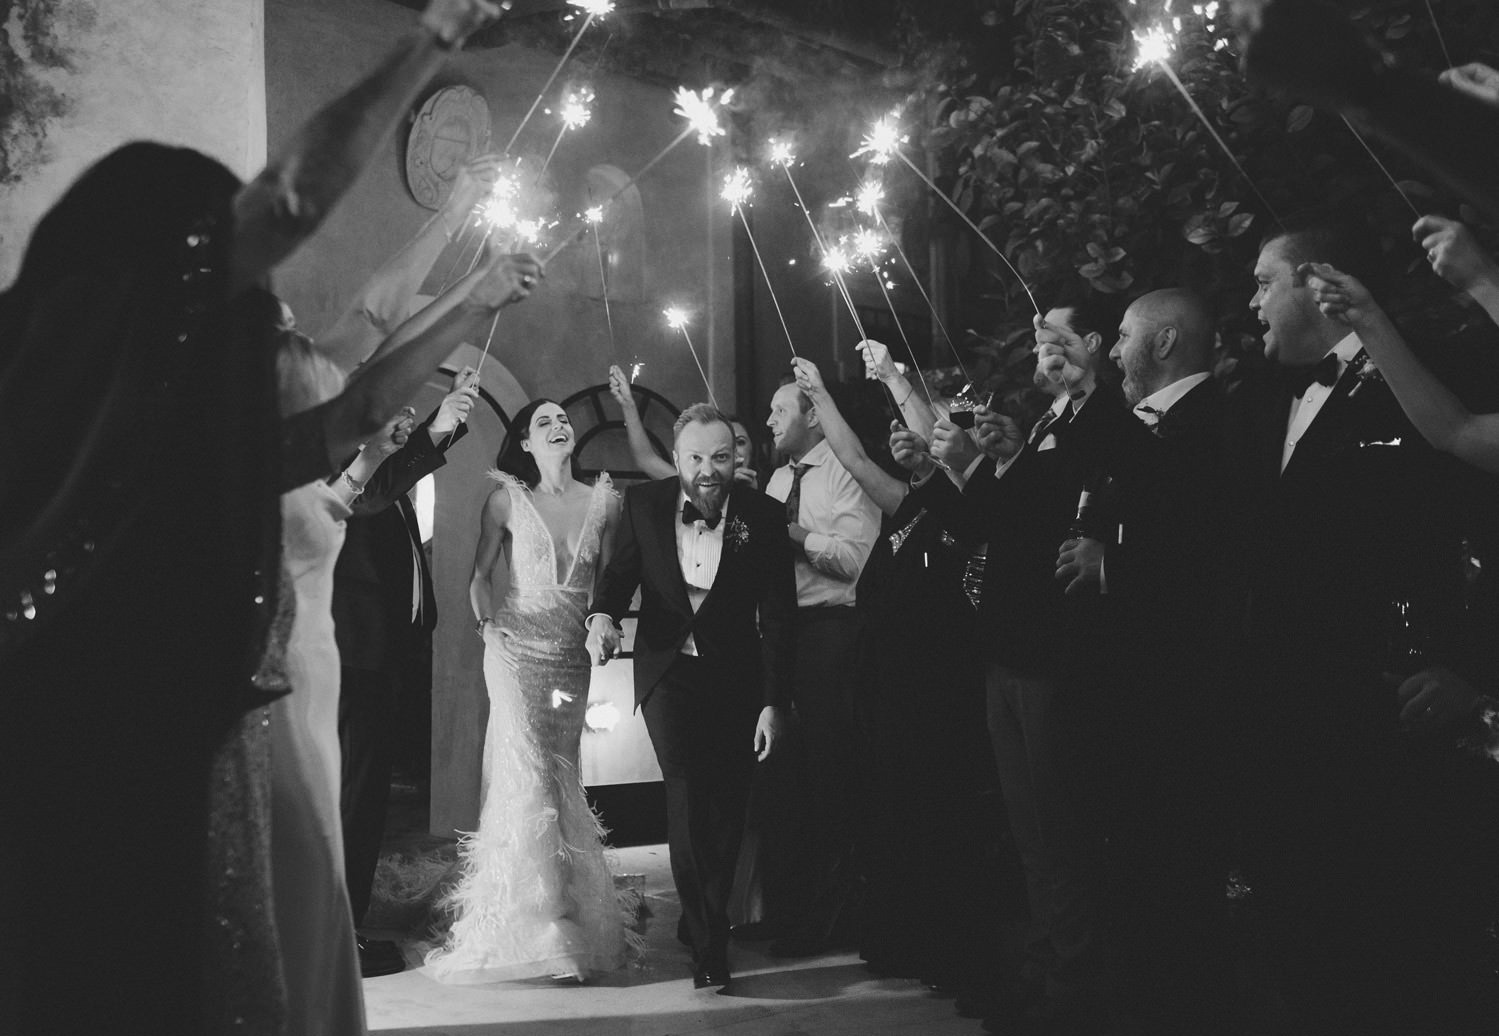 Wedding Sparkle exit at Villa San Giacomo Positano | Photo: Camilla Anchisi Photography | Planning: Weddings Italy by Regency